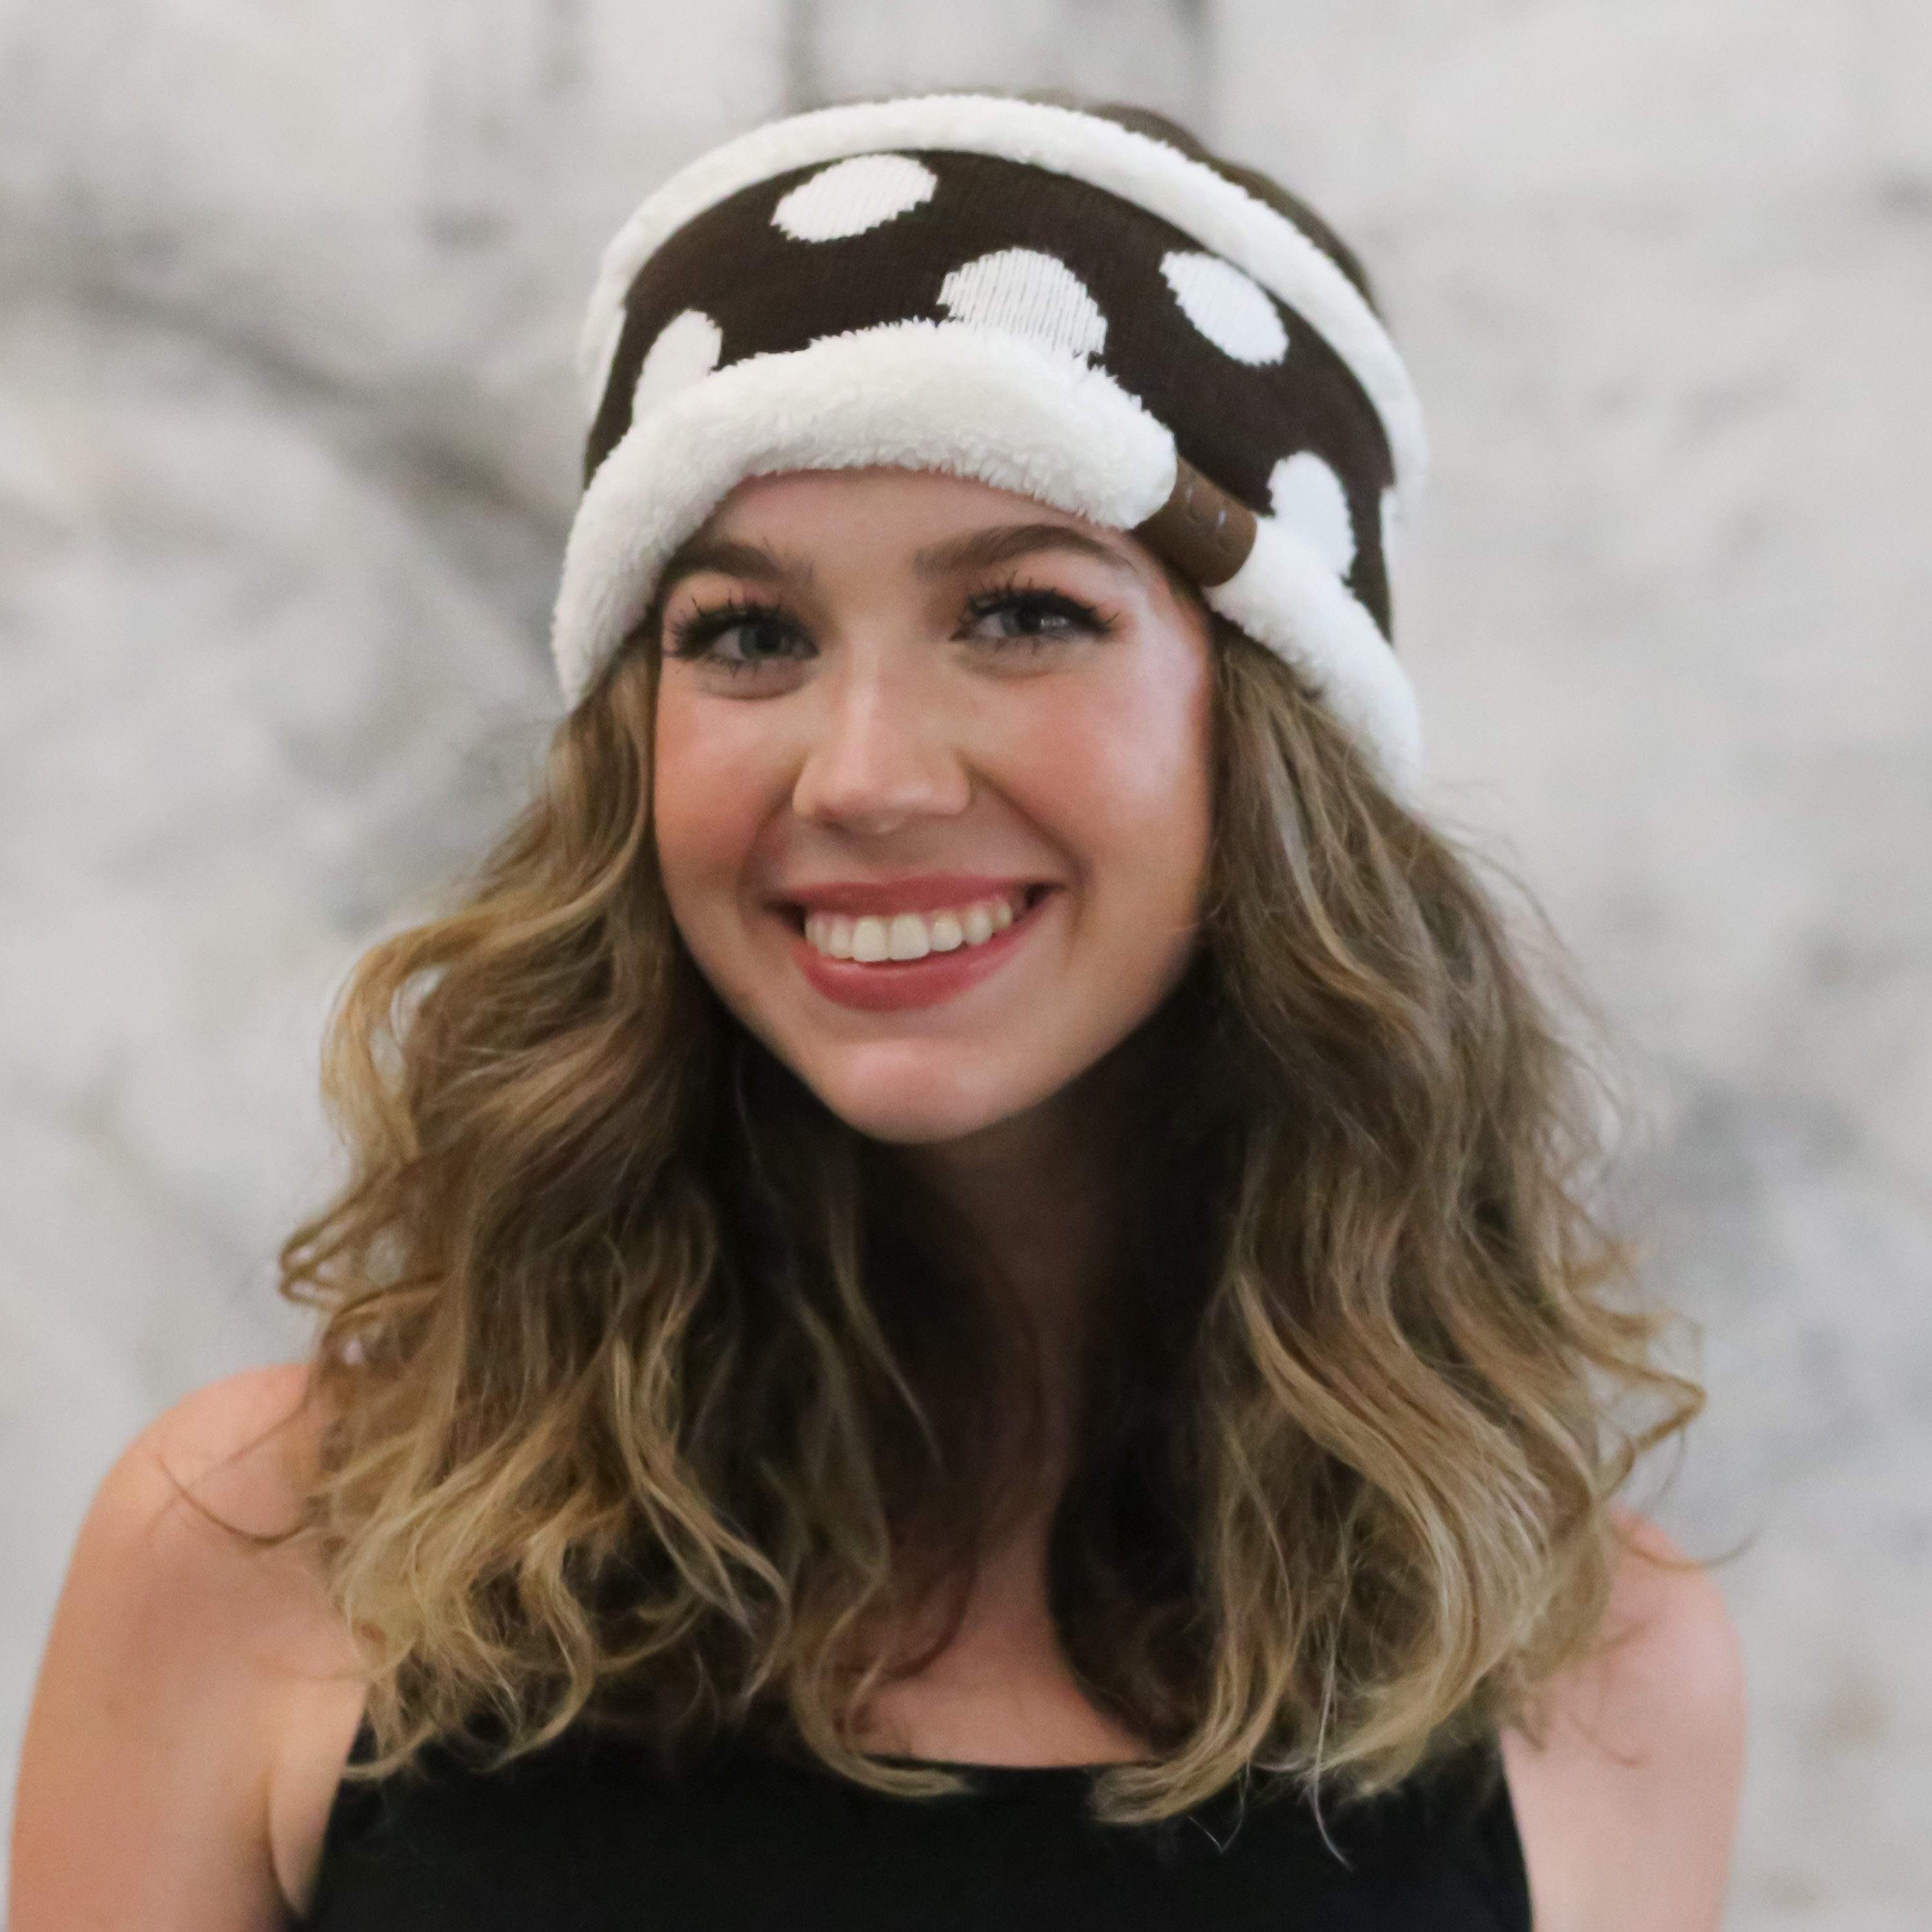 PD-HW-21 HEADWRAP BROWN/WHITE